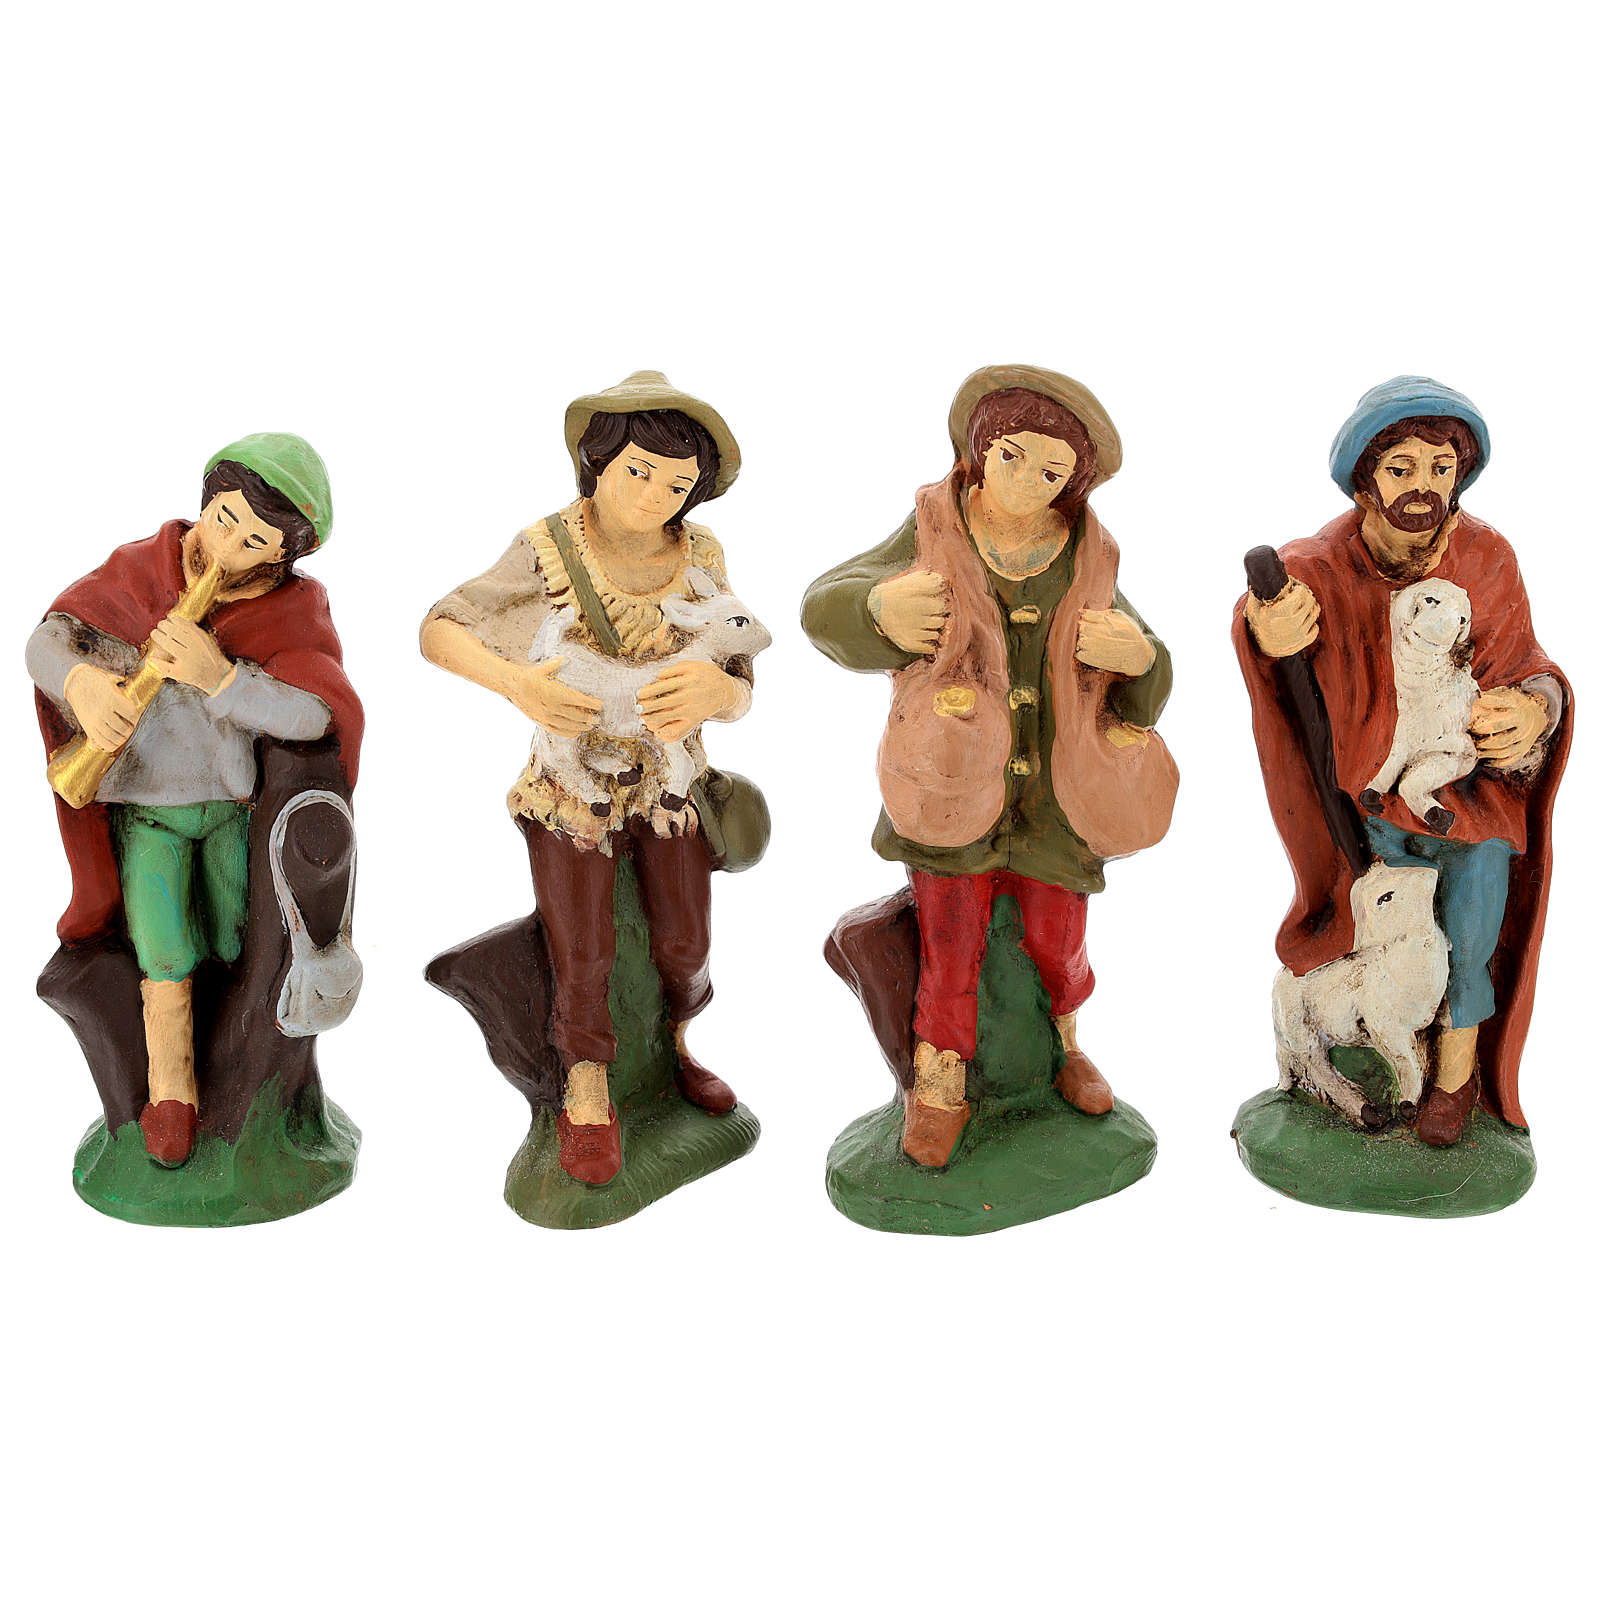 Belén terracota decorada 15 estatuas 15 cm 4